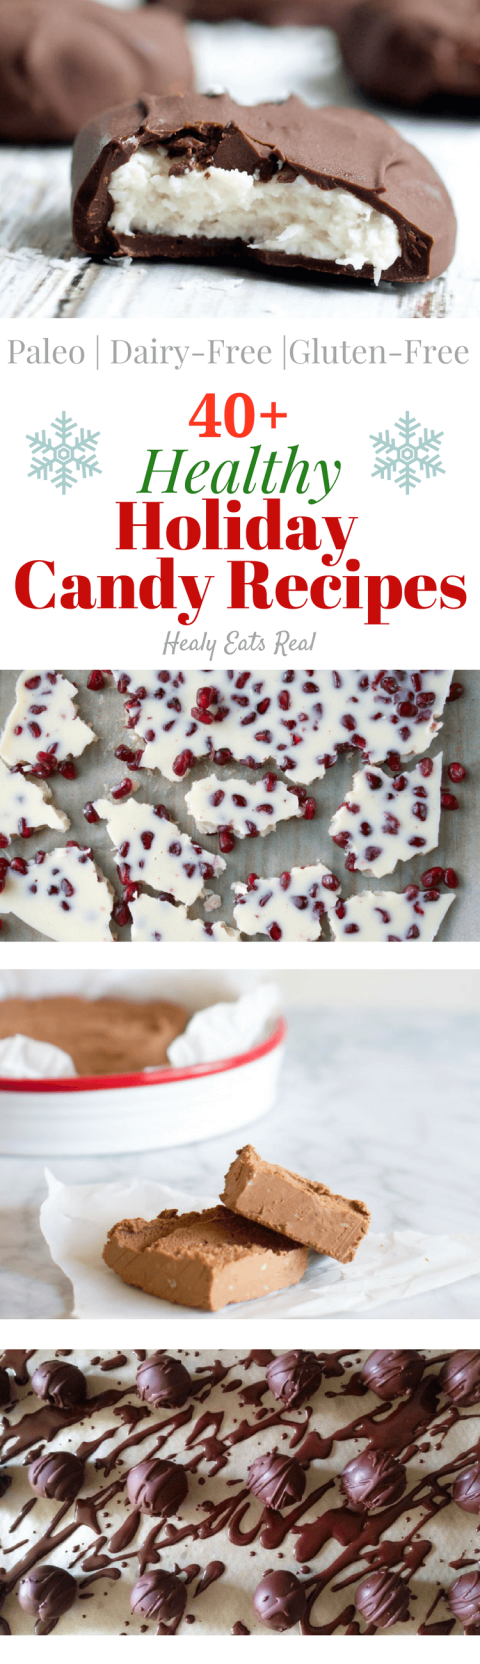 30 Healthy Holiday Candy Recipes Paleo Gluten Free Candies